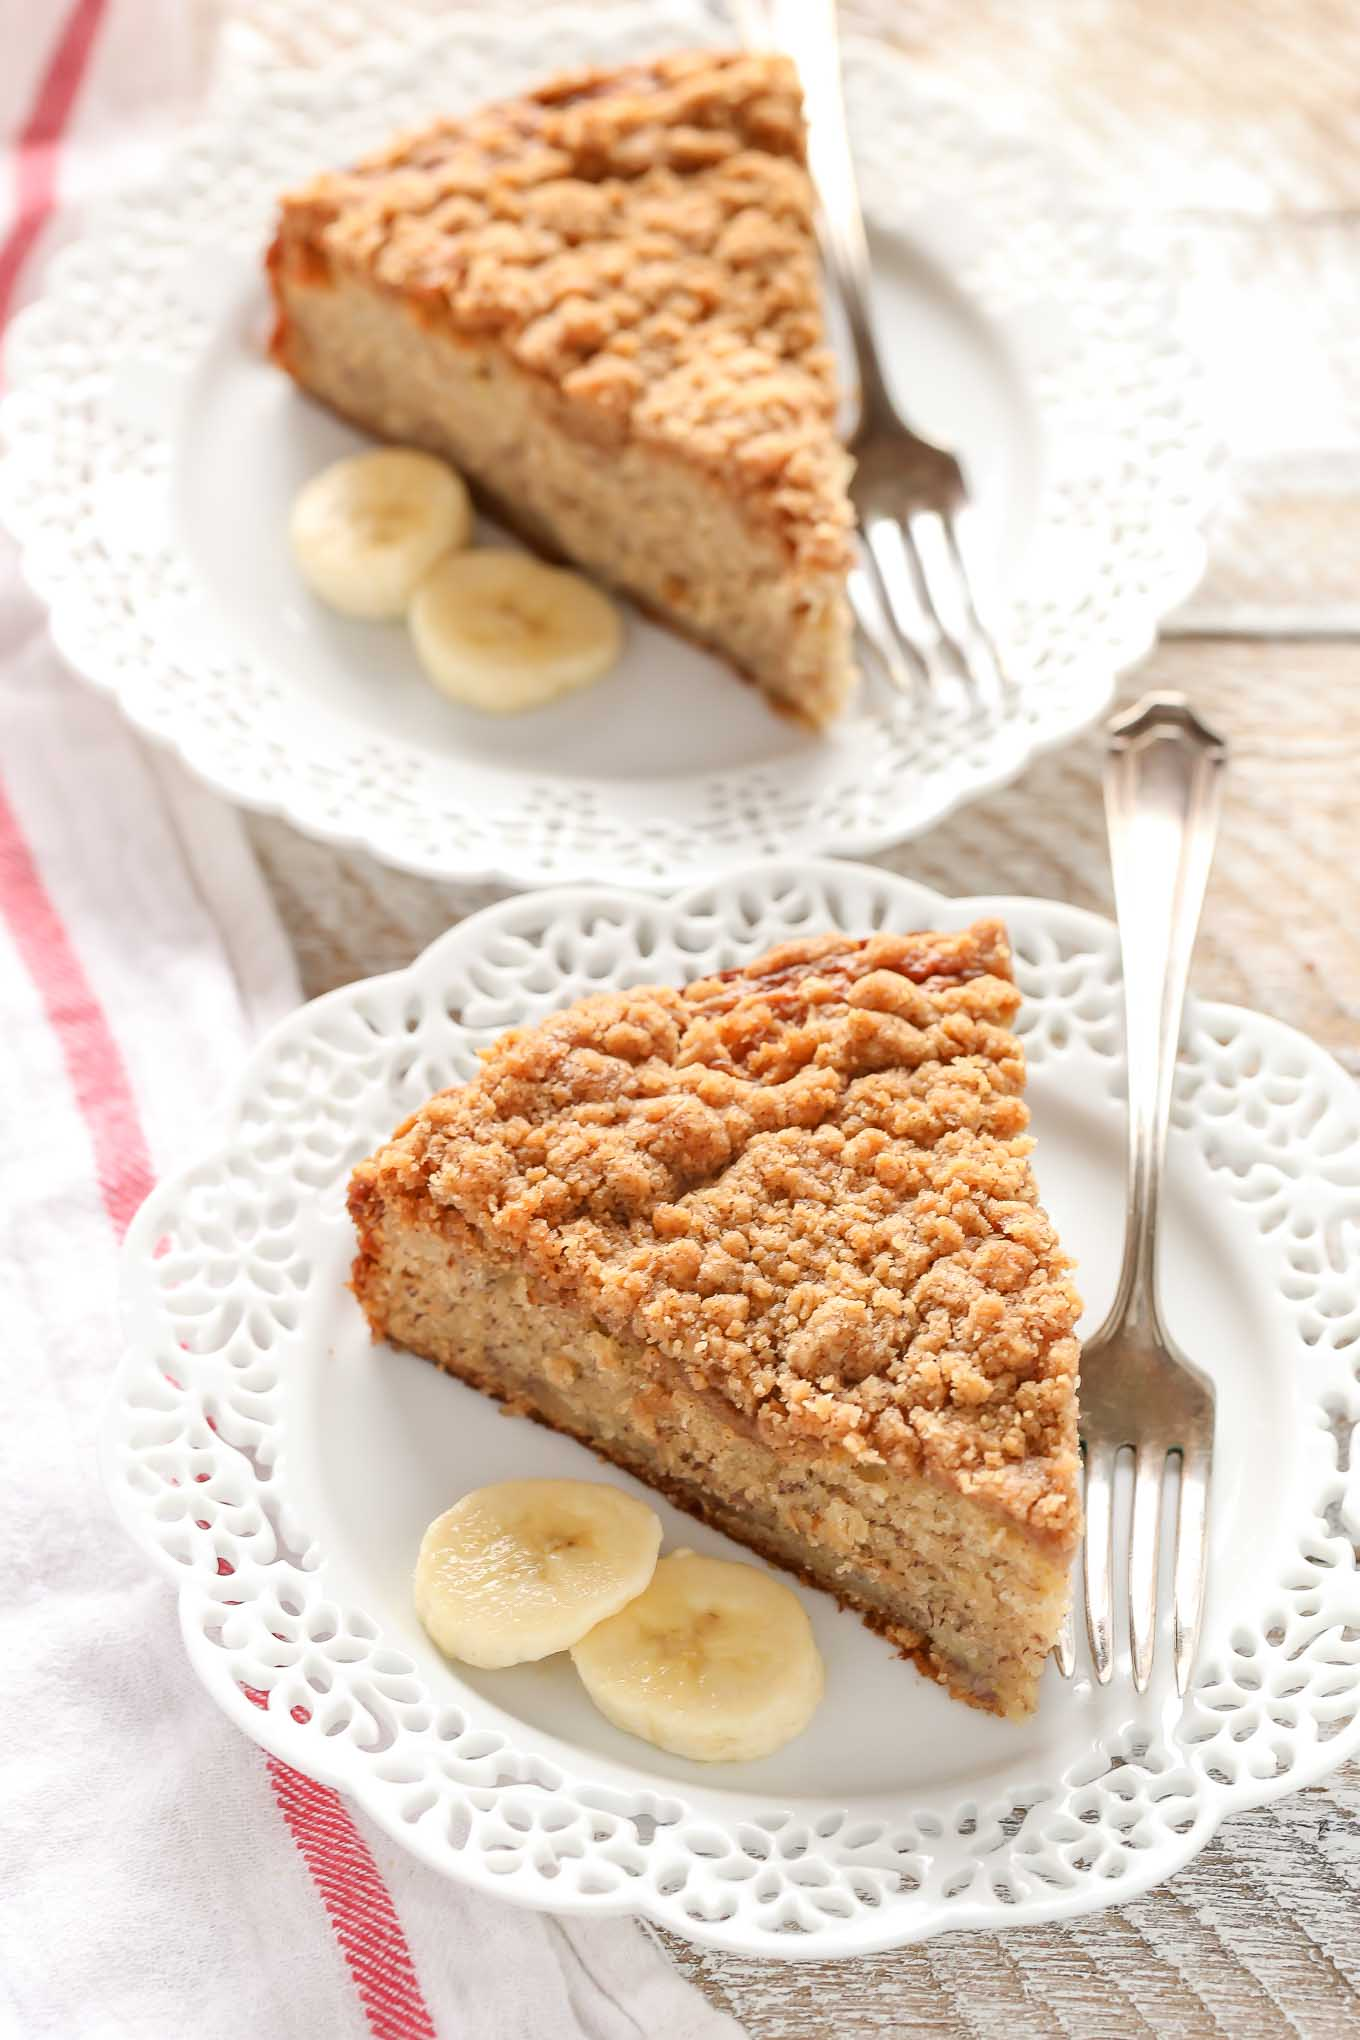 A moist banana cake topped with a brown sugar crumb topping. This Banana Crumb Cake is a perfect way to use those ripe bananas!